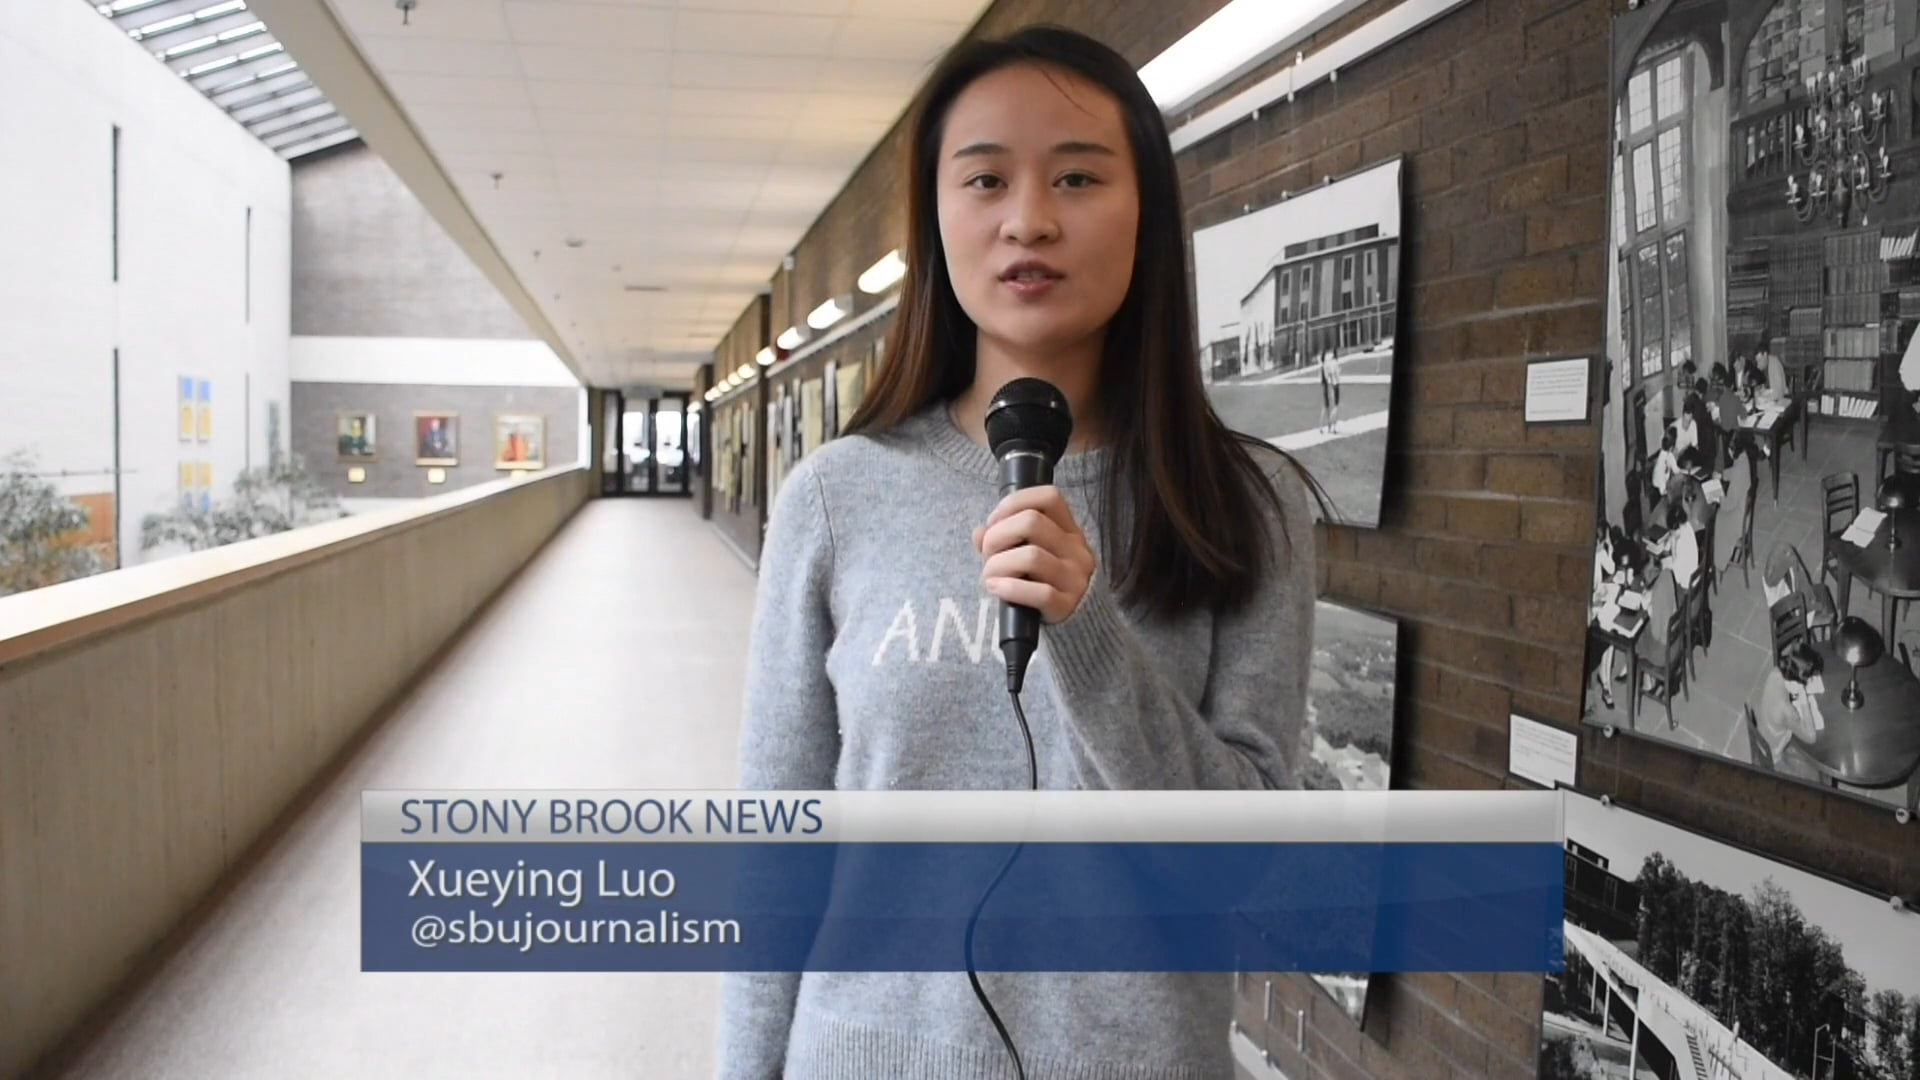 Stony Brook News: Indigenous Women Remembered